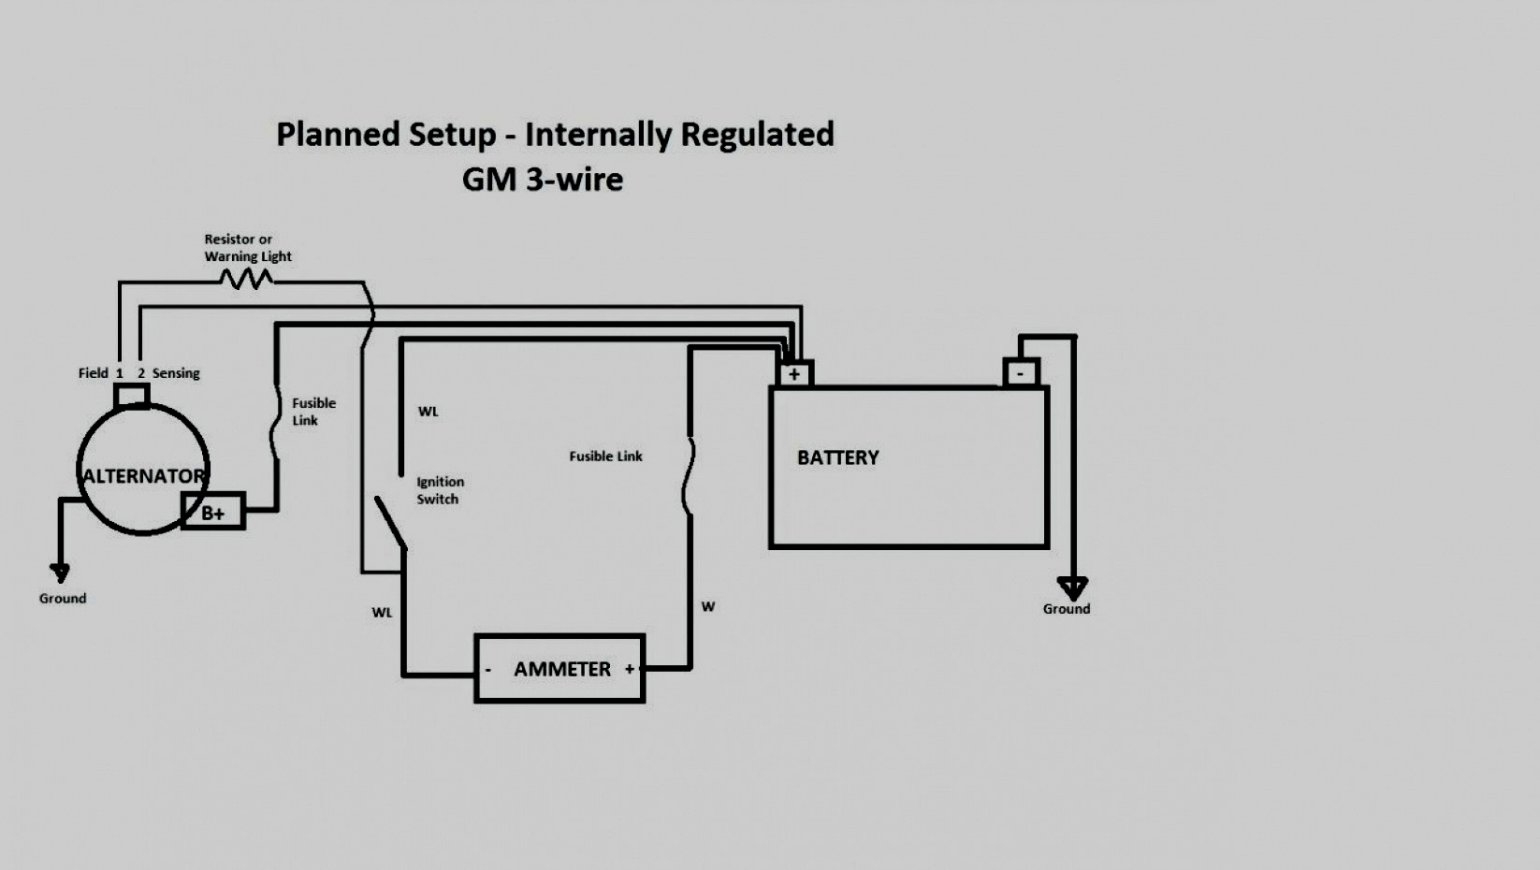 1 Wire Gm Alternator Wiring Diagram from 2020cadillac.com